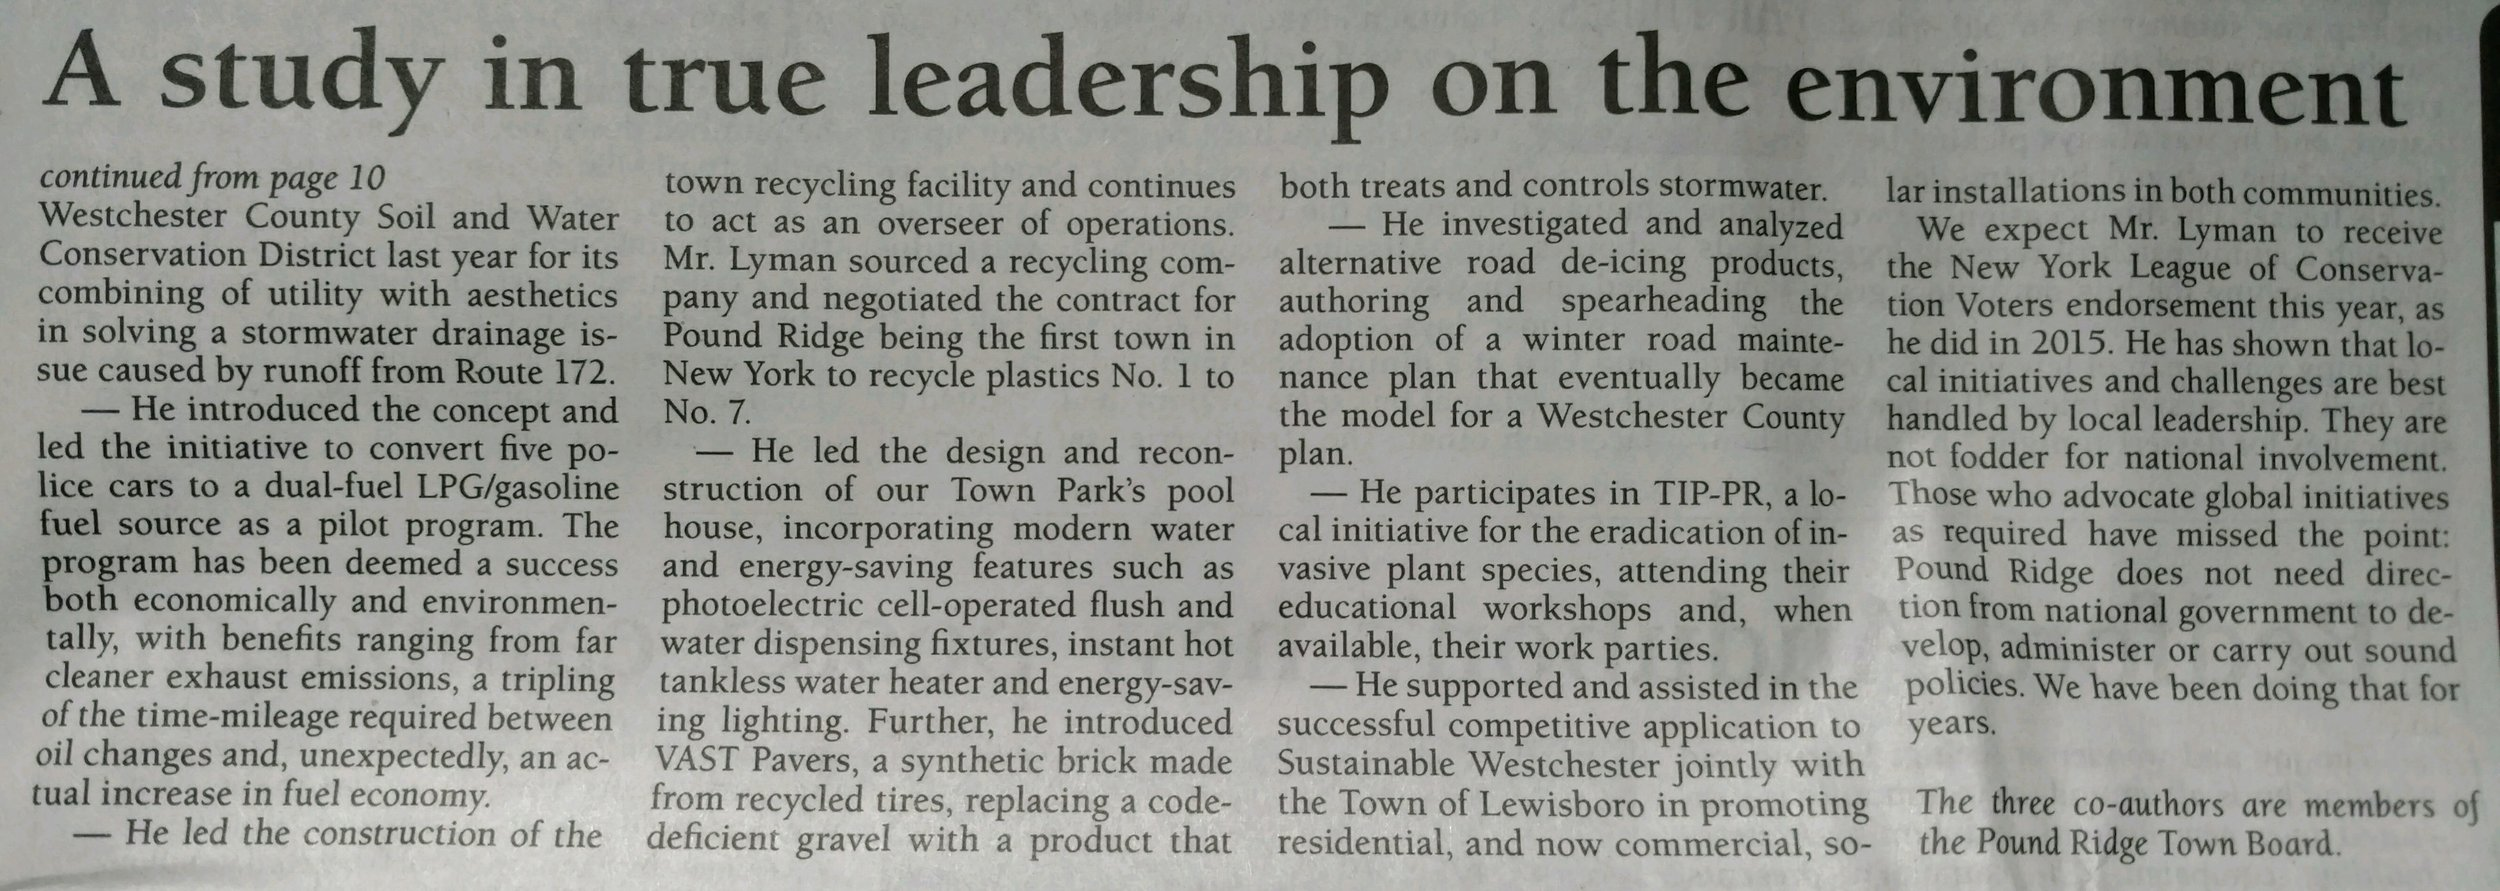 Guest Column -- Dick Lyman, Environmental Leader (July 14 RR) page 2.jpg